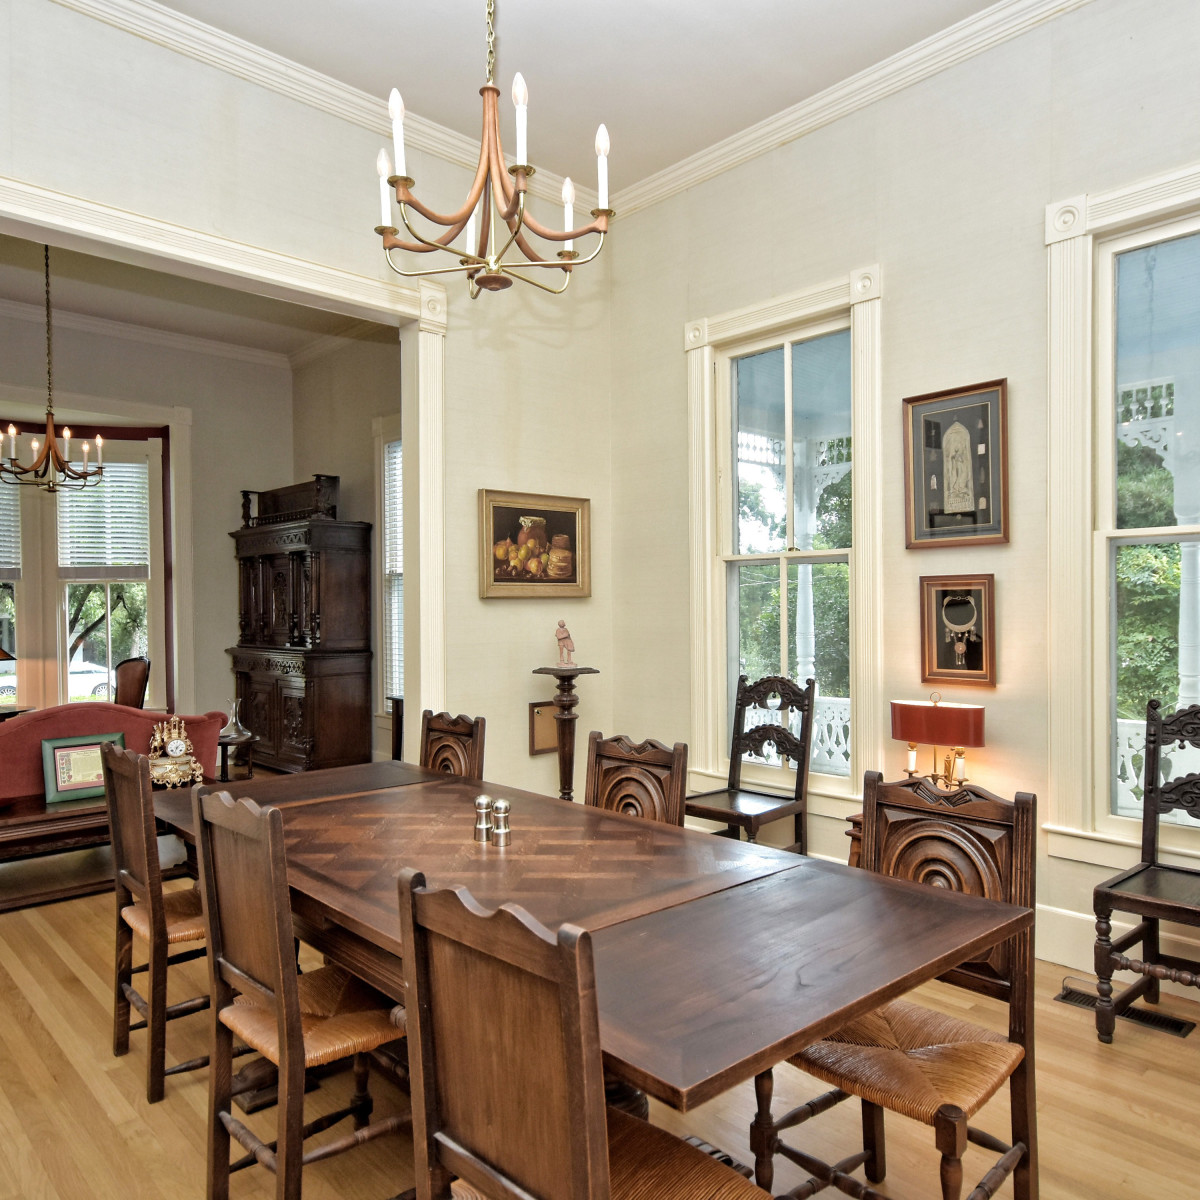 581 Coll New Braunfels house for sale dining room